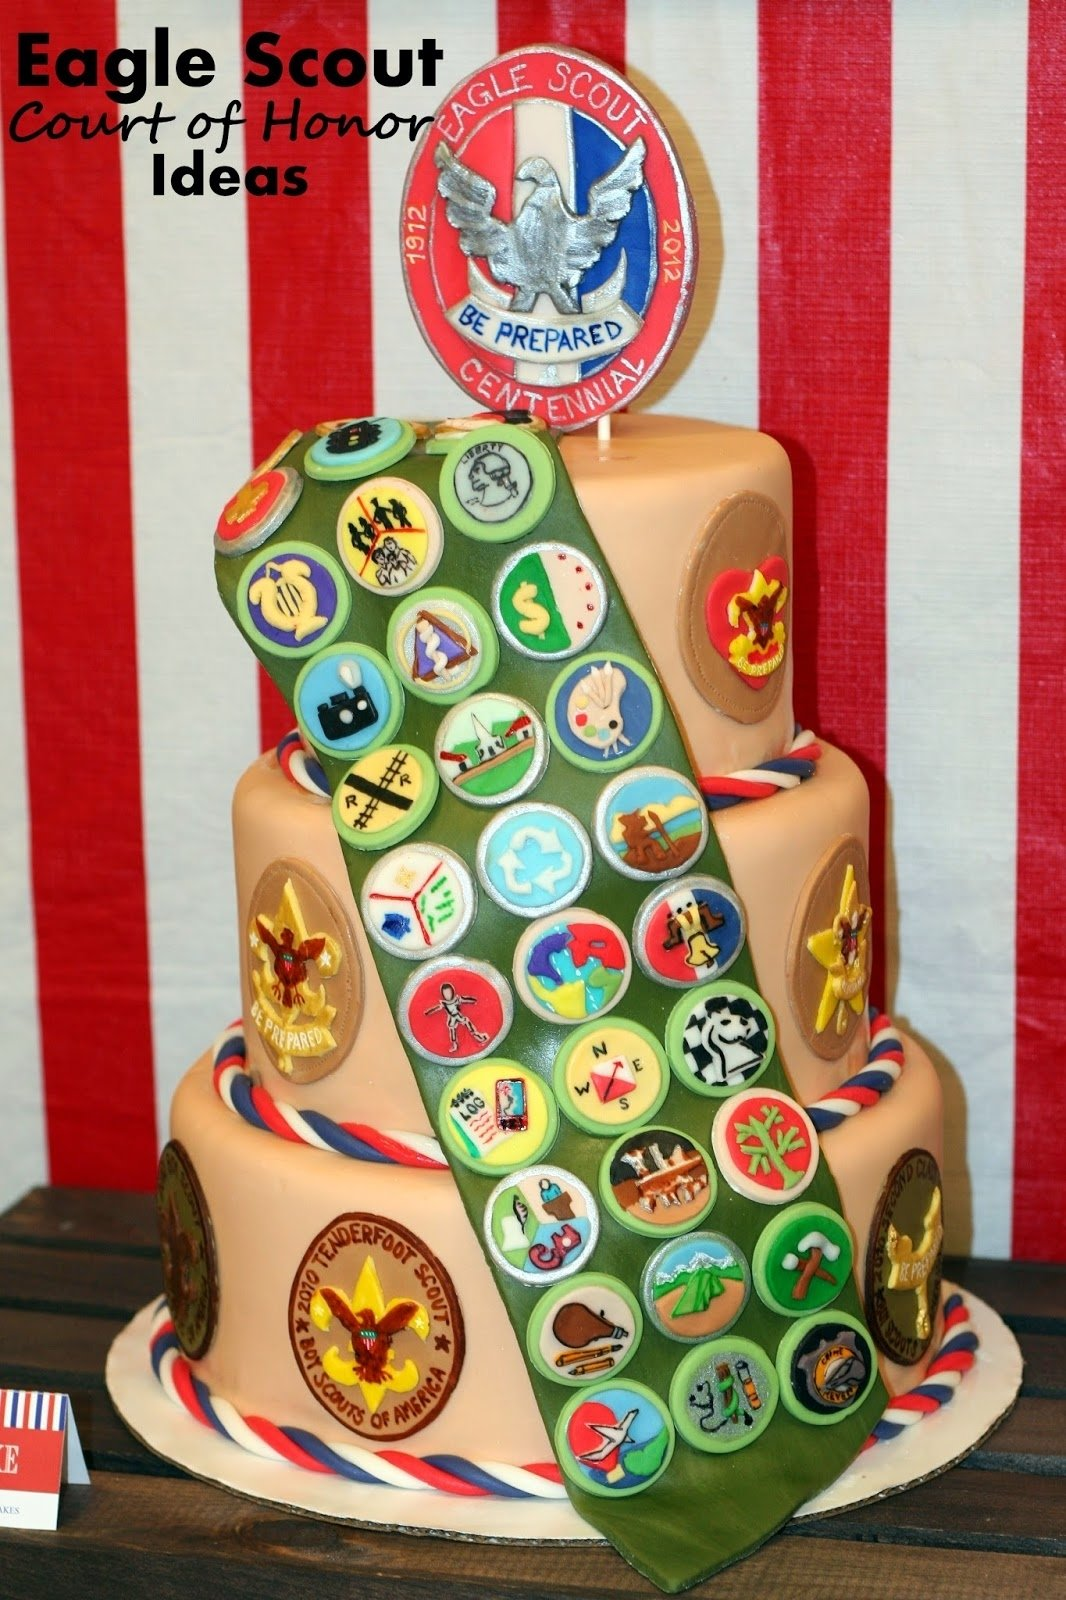 10 Spectacular Boy Scout Court Of Honor Ideas the carver crew an eagle scout court of honor 4